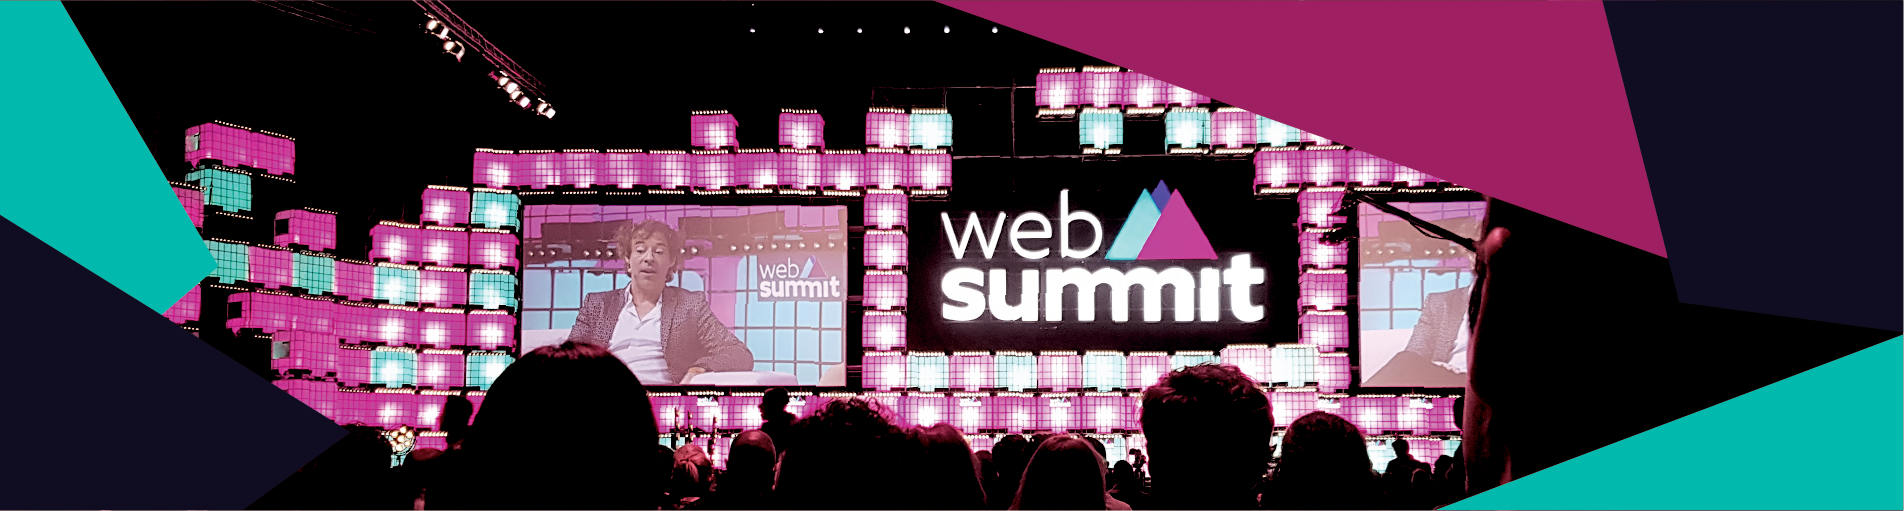 The Web Summit in Lisbon gathered  70k+ attendees this year